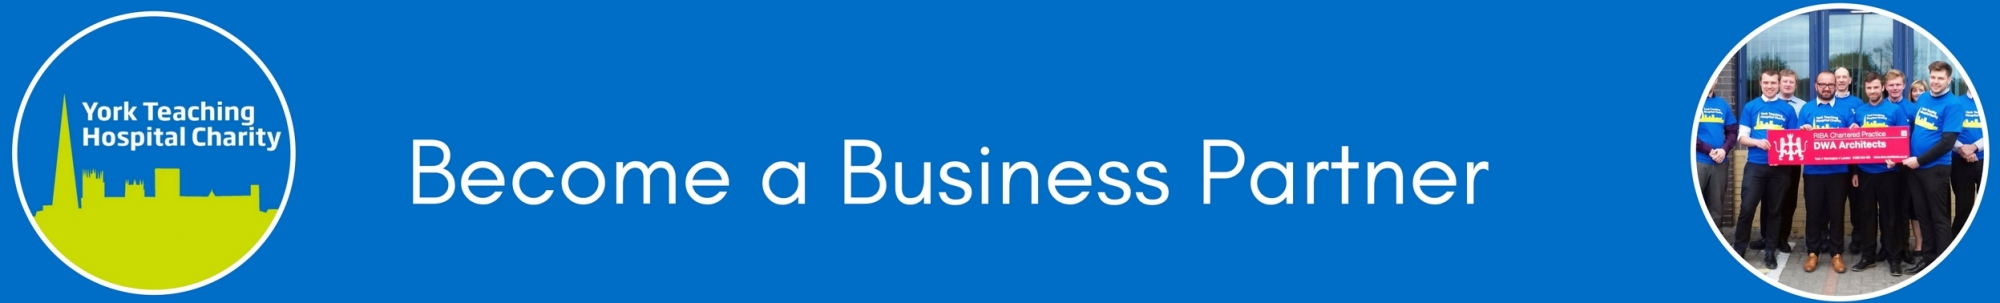 Business Partner header